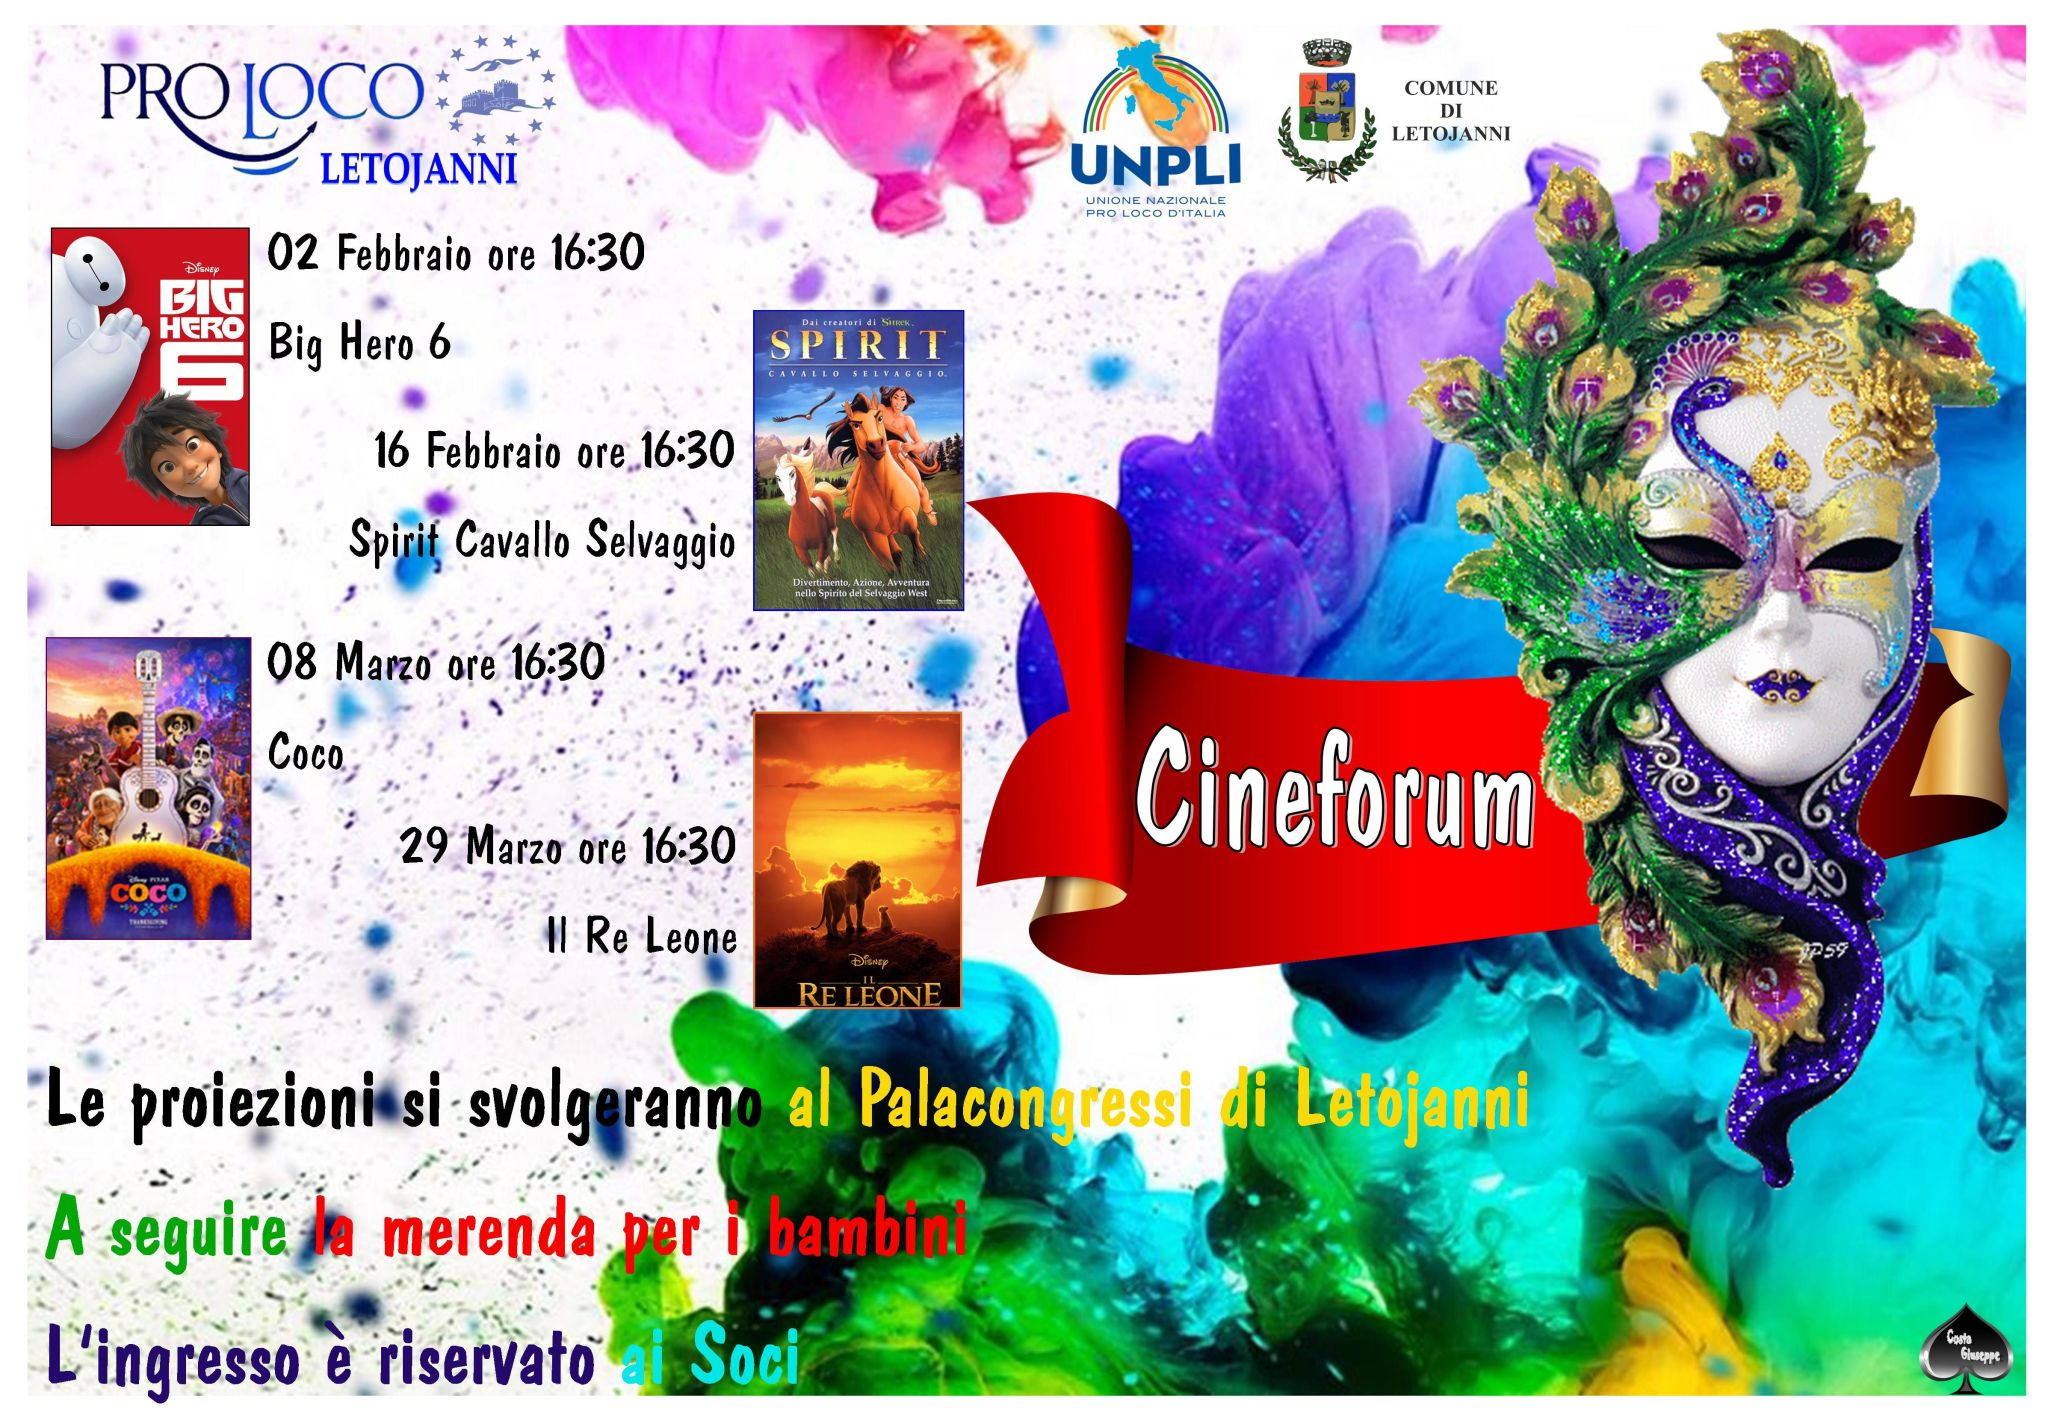 Evento a Letojanni - Cineforum